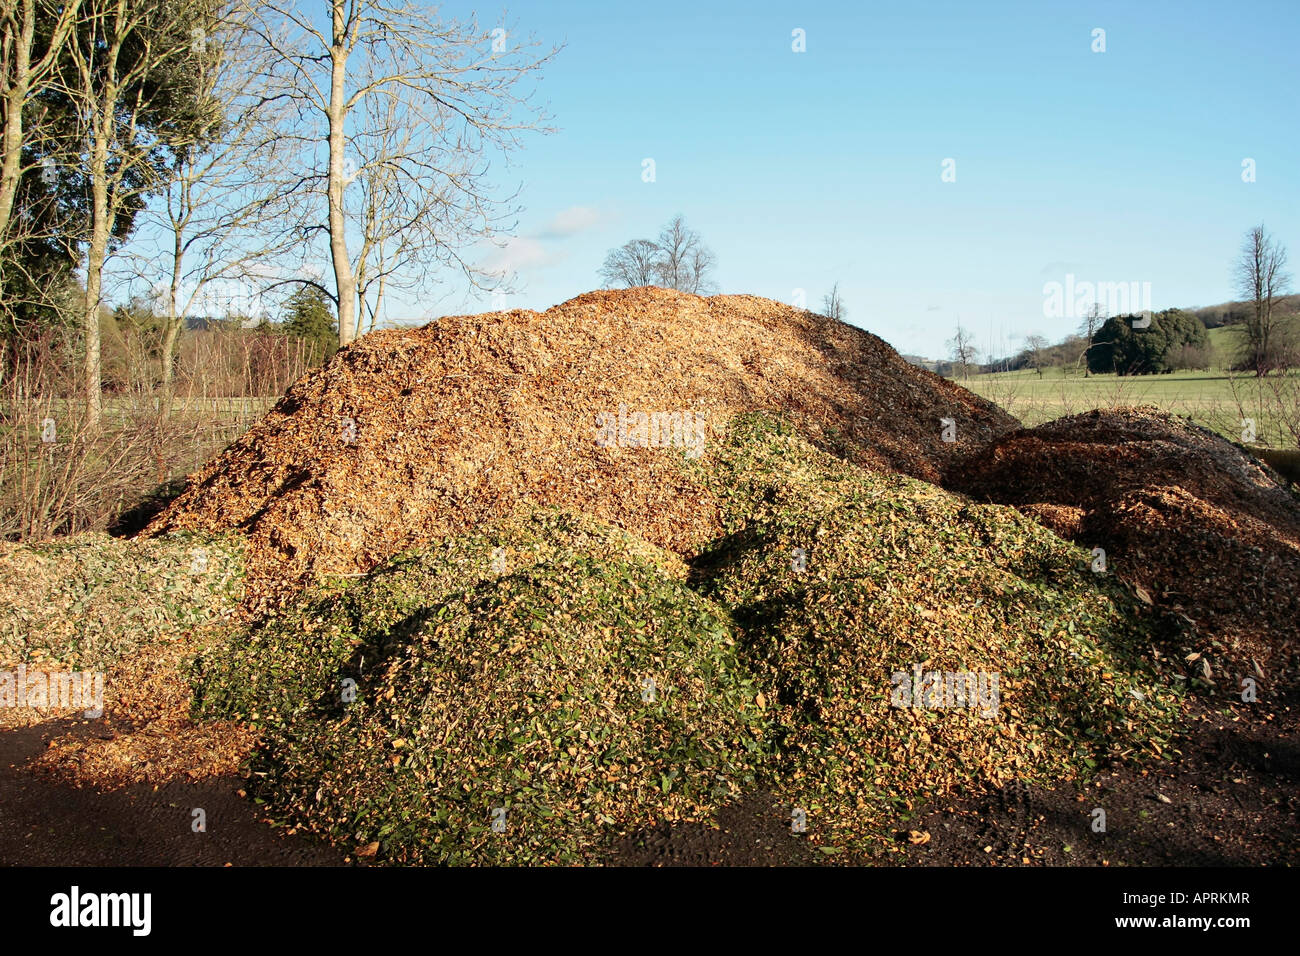 Compost heap made from shredded bark and hedge clippings - Stock Image